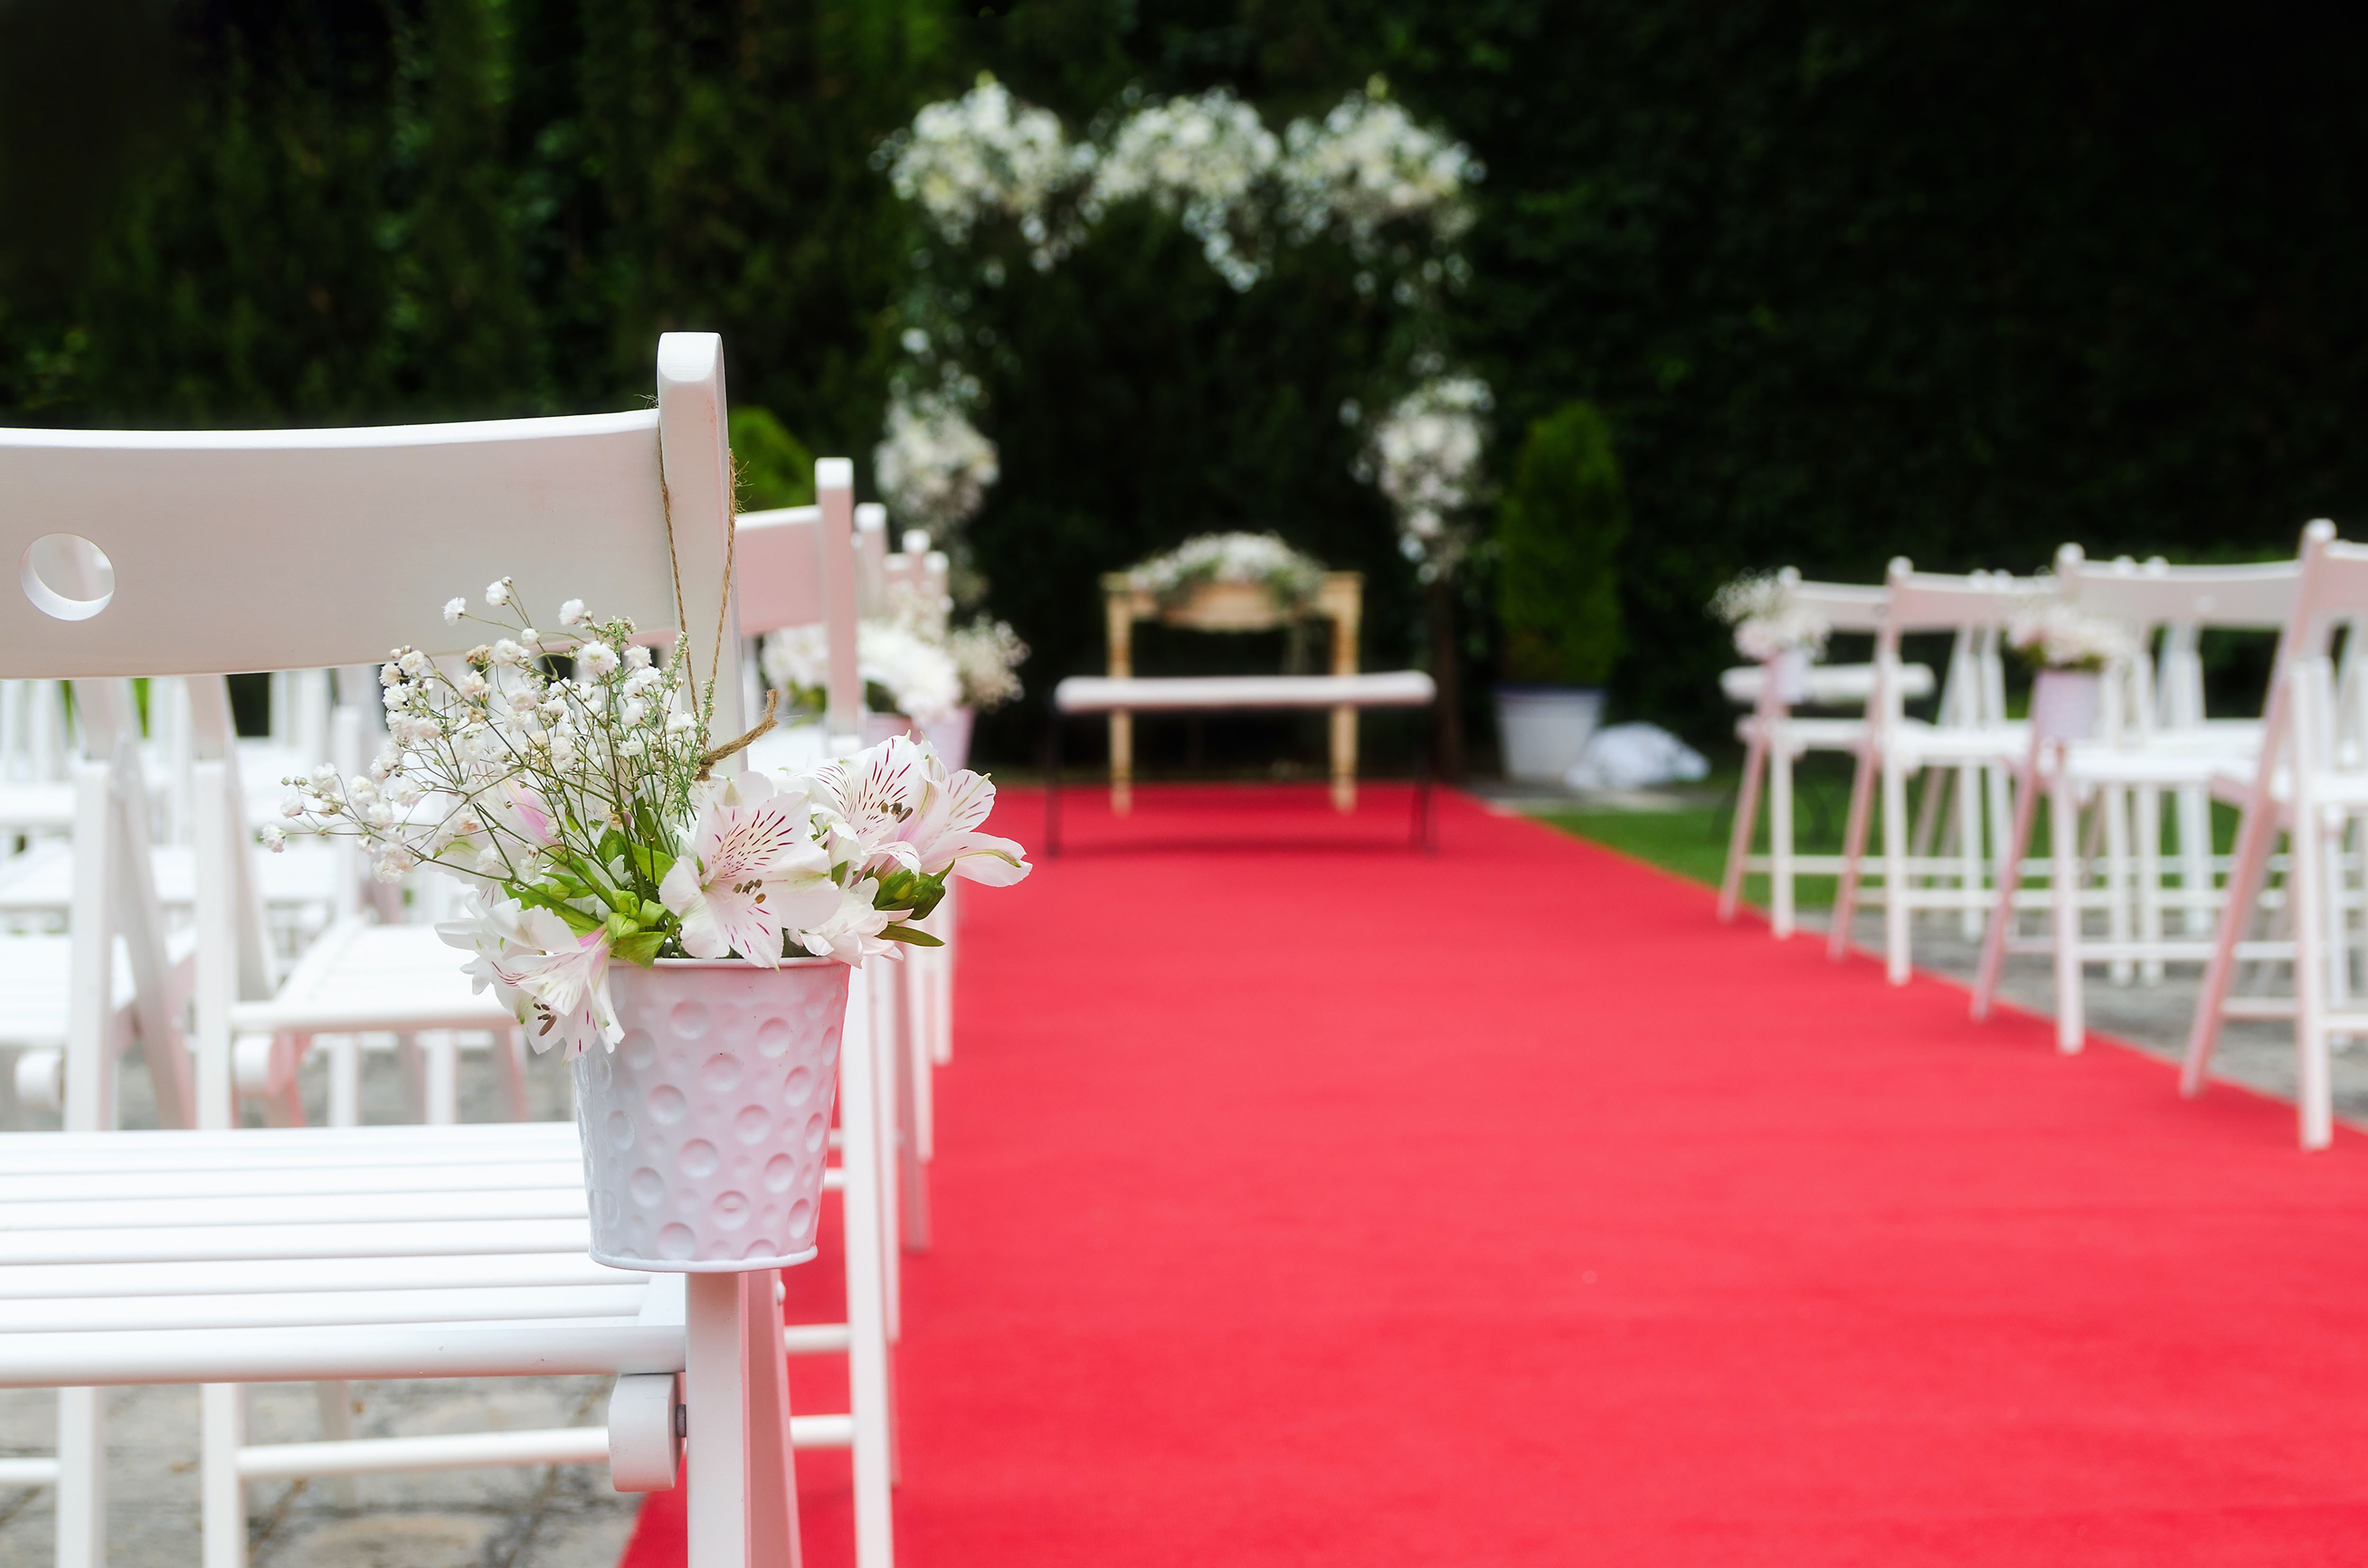 Beautiful Wedding ceremony decoration, rustic altar decorated with lilies, alstroemerias and chrysanths flowers behind  ivy wall, red carpet with whites chairs. Wedding day concept. Space for text.